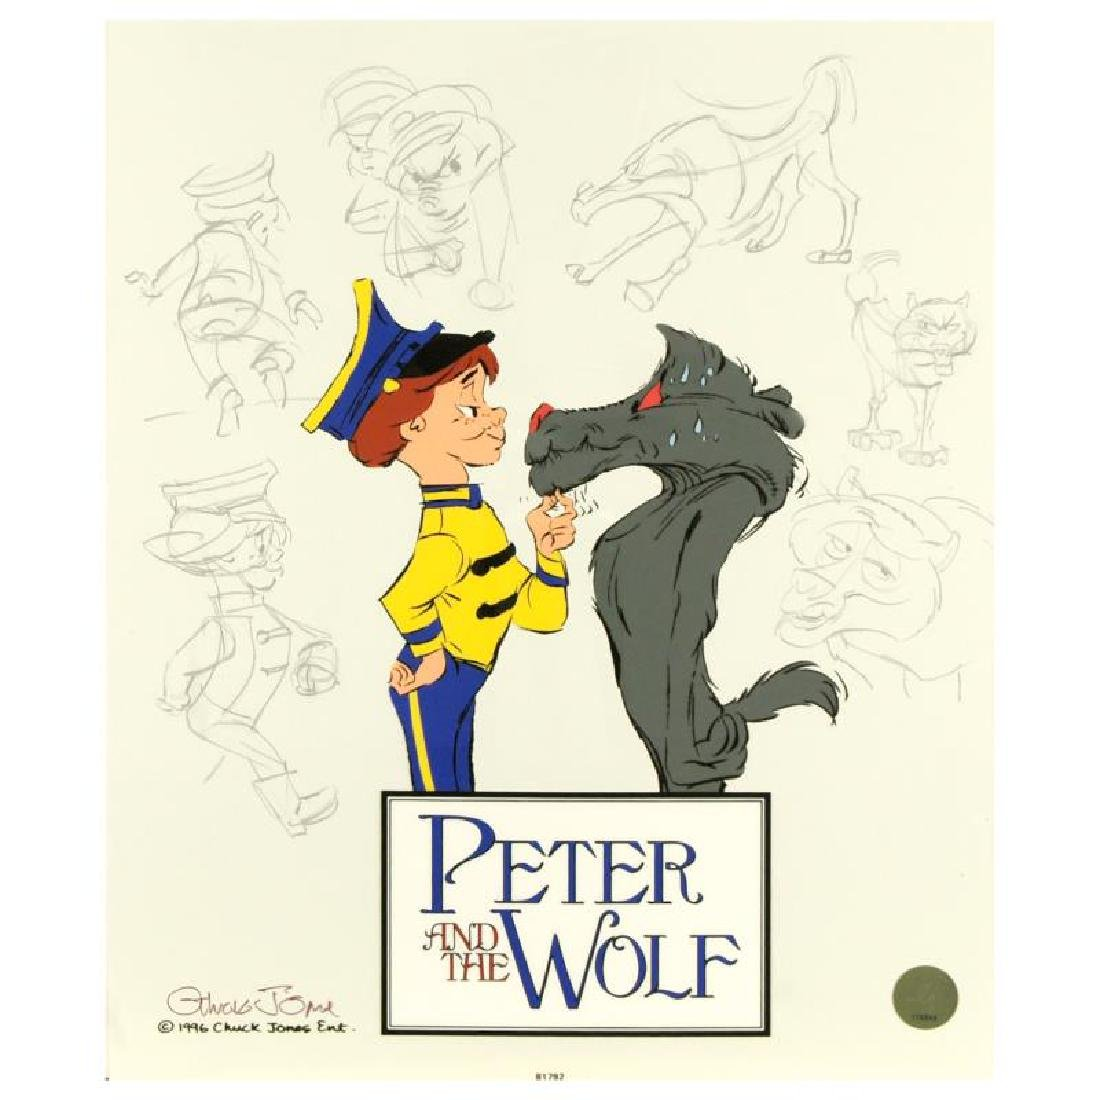 """Peter and the Wolf: Character Sketches"" by Chuck Jones"